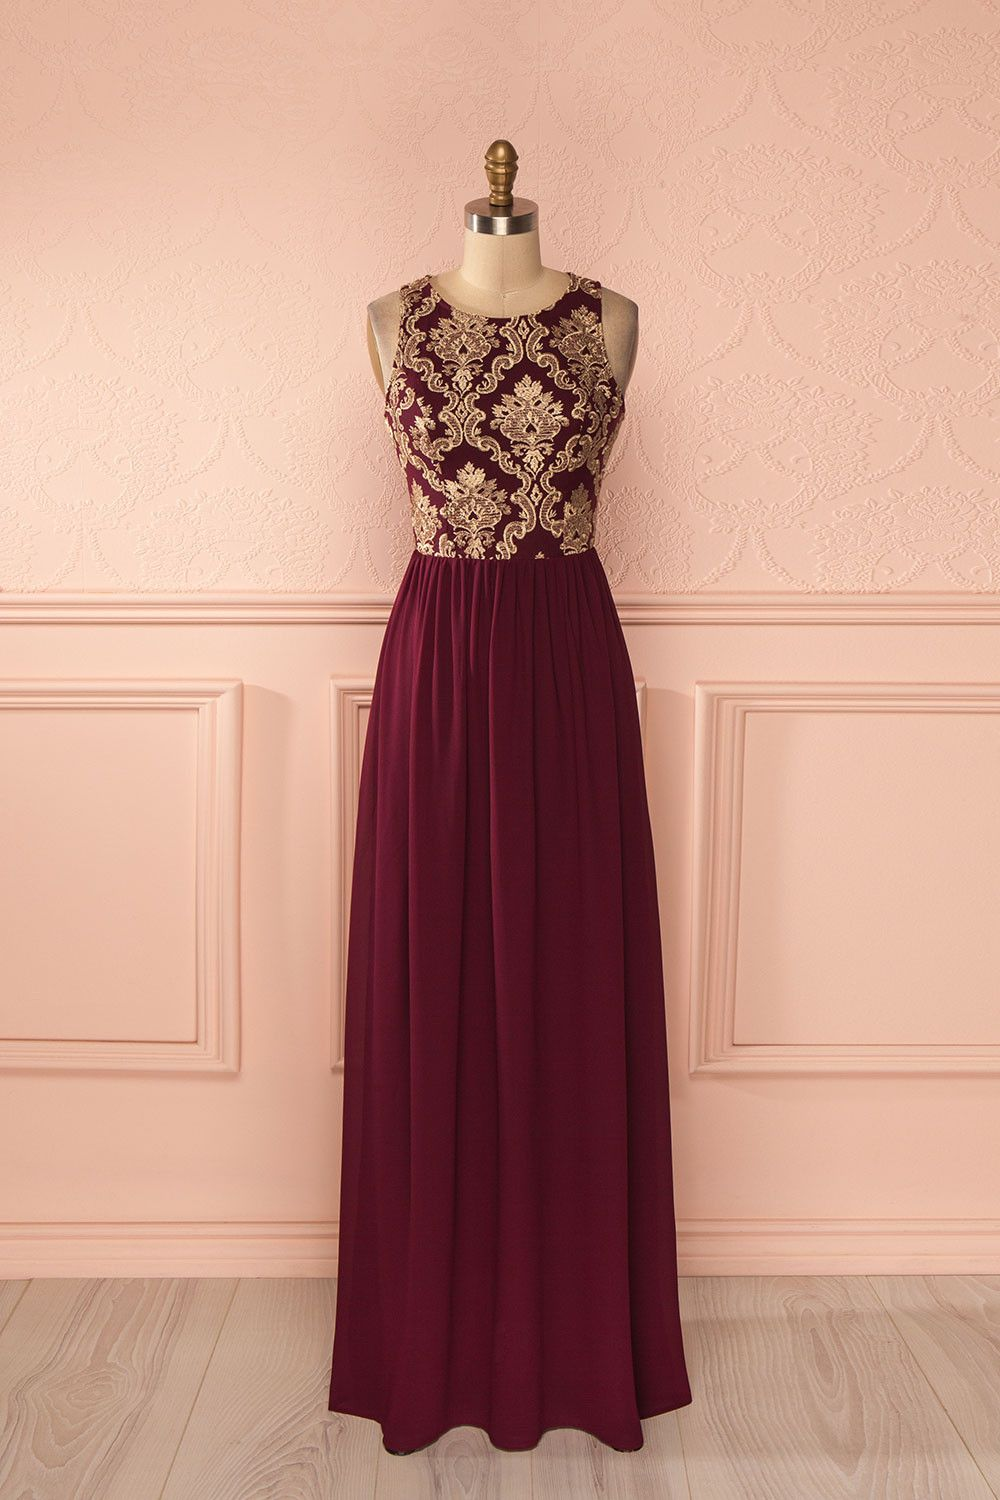 Lorsque les violons chantent, les coeurs dansent en harmonie.  When violins sing, hearts dance in harmony.  Burgundy and gold embroidered maxi dress www.1861.ca